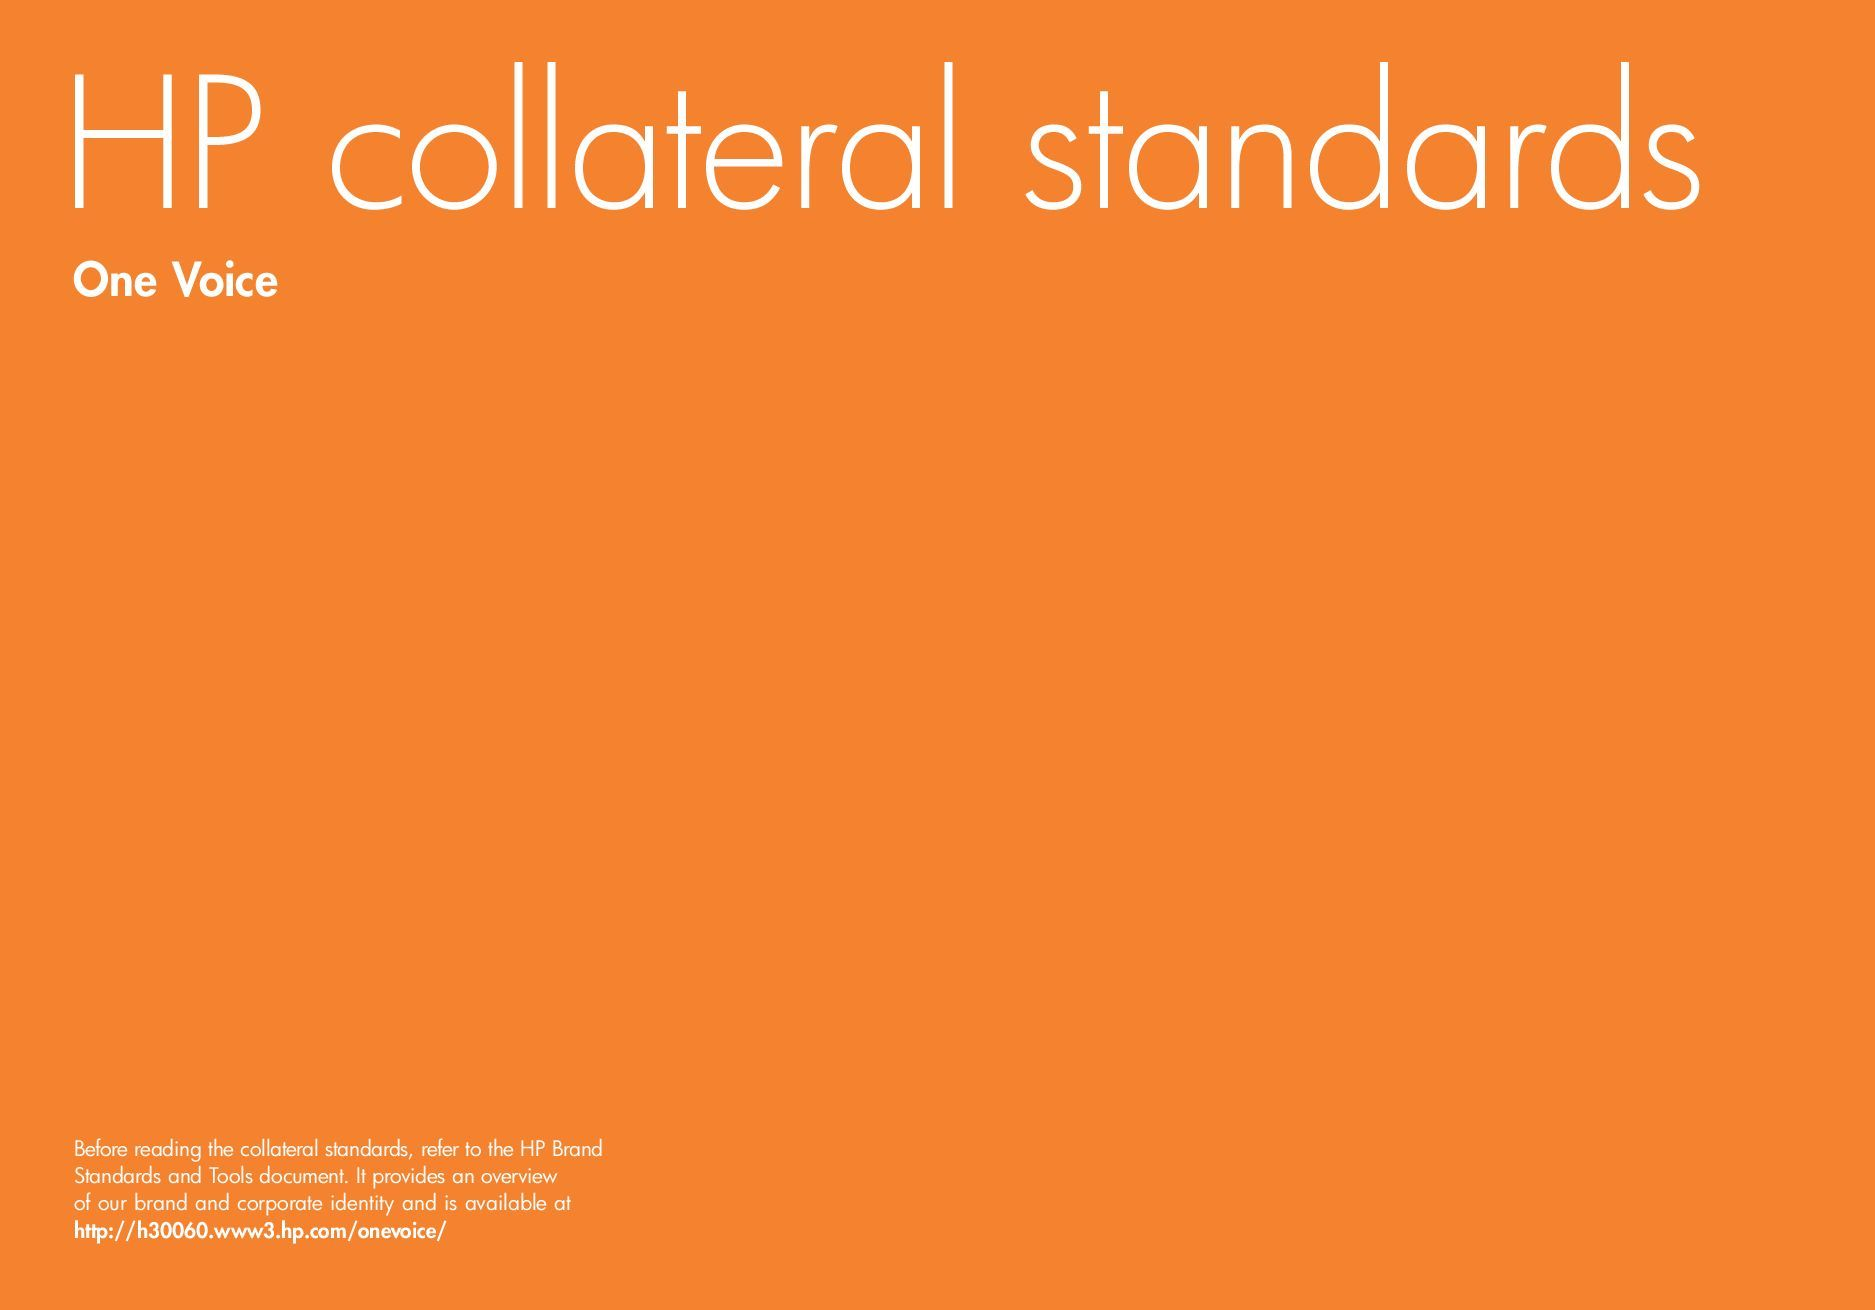 HP collateral standards • brand guidelines • Pinterest